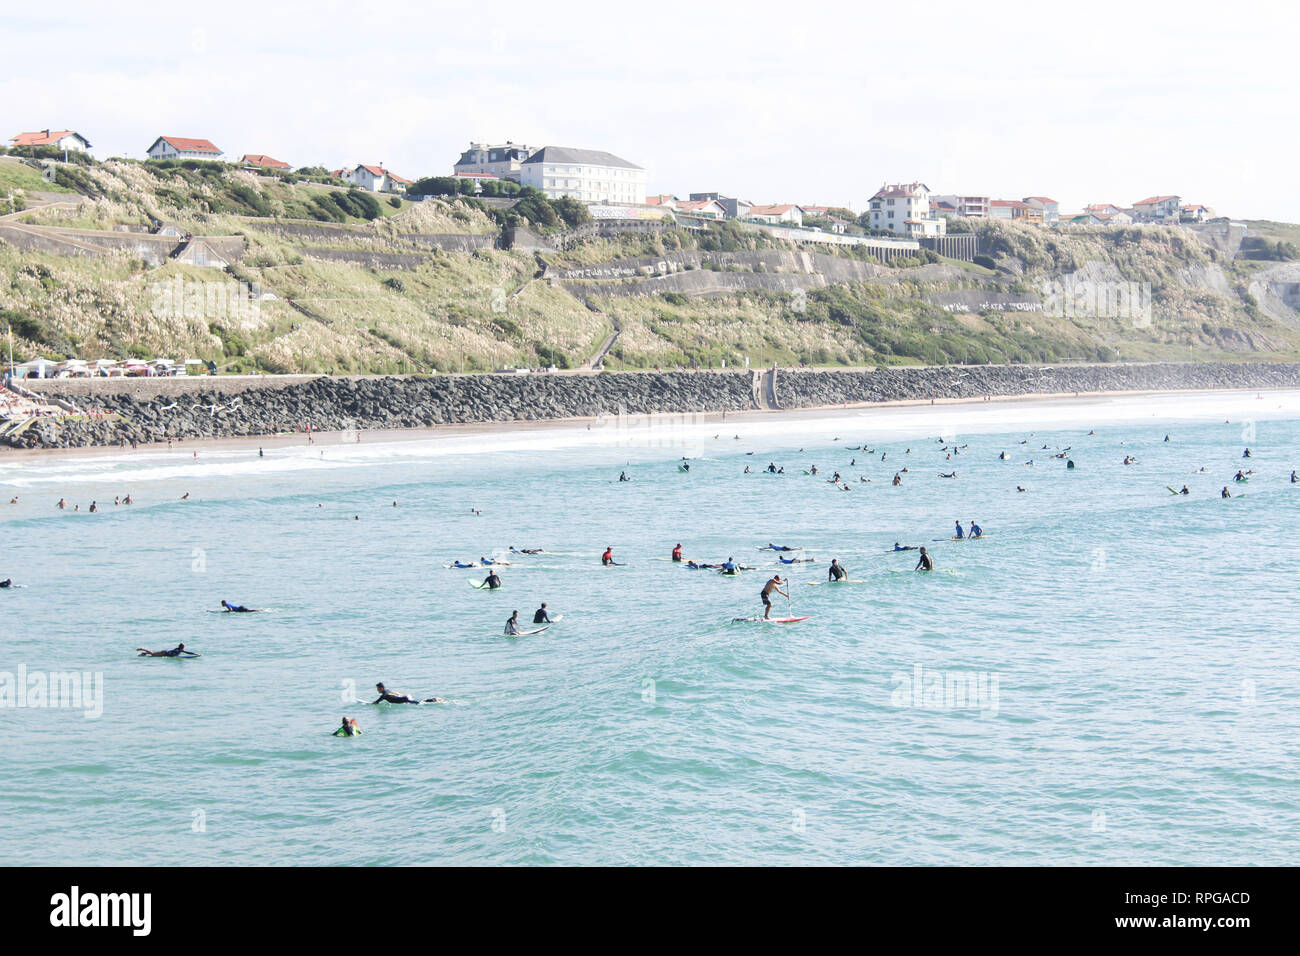 A surfing and beach loving town of Biarittz. Surfers fill the water. - Stock Image